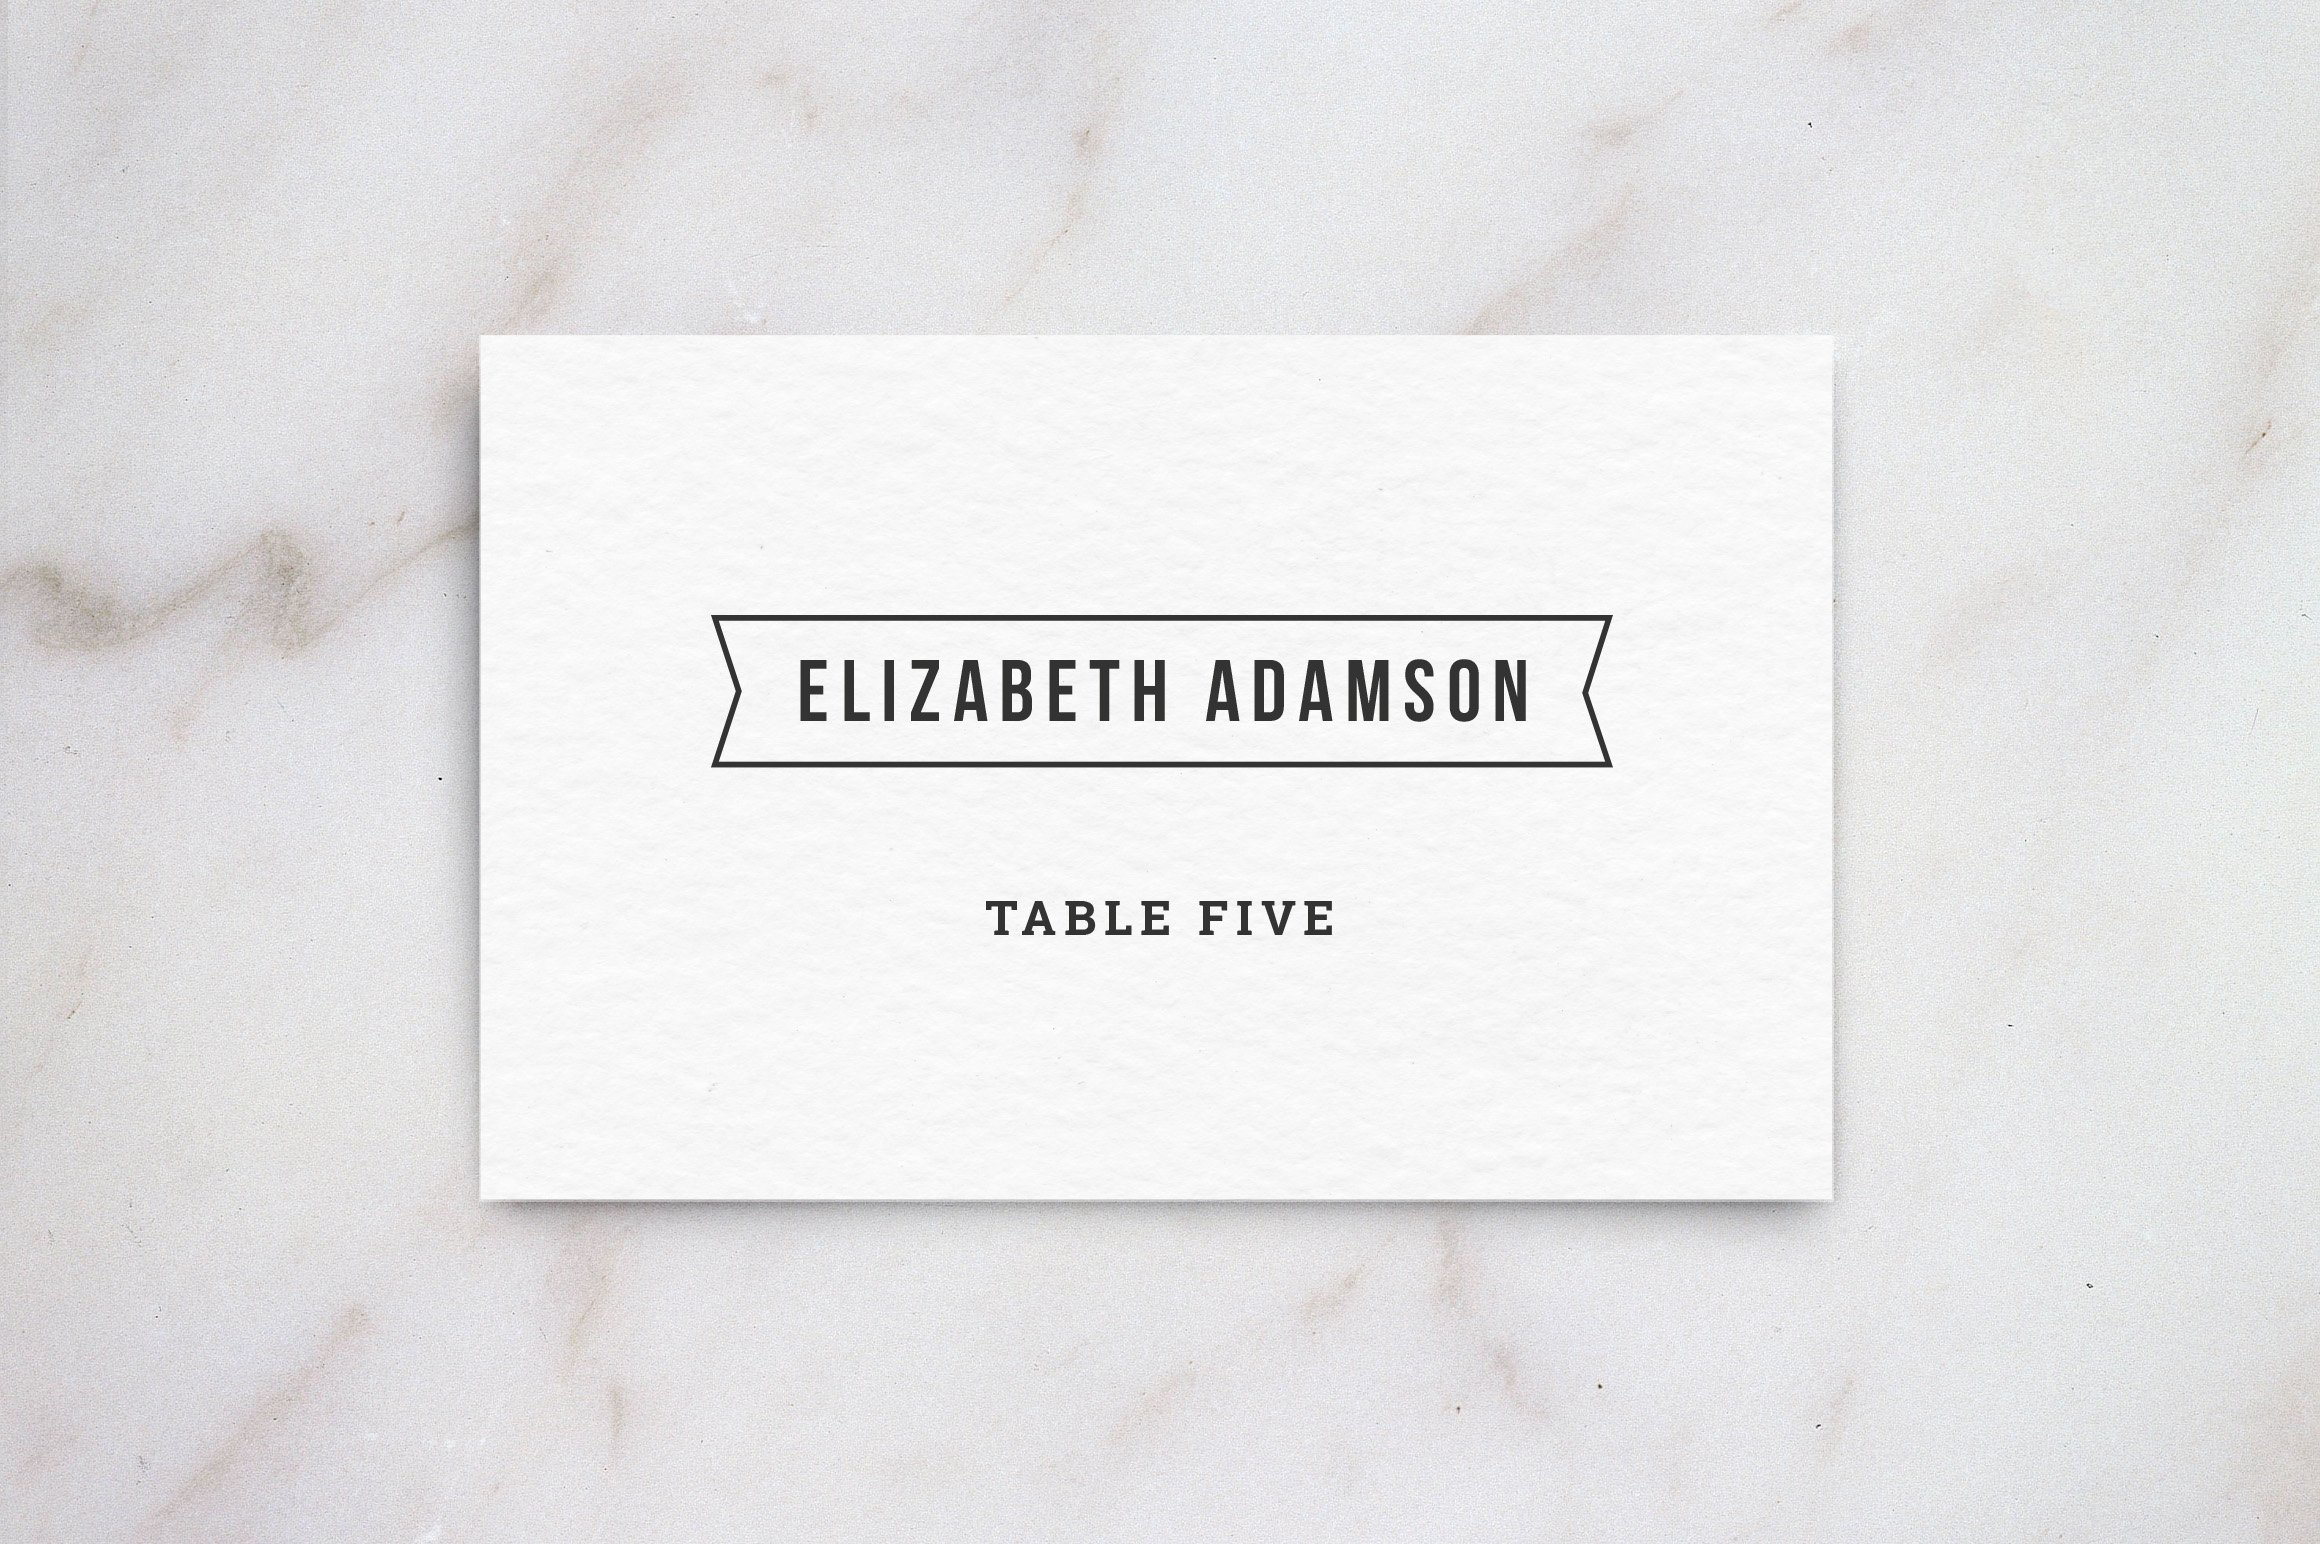 Wedding Table Place Card Template Card Templates Creative Market - Wedding place card template word